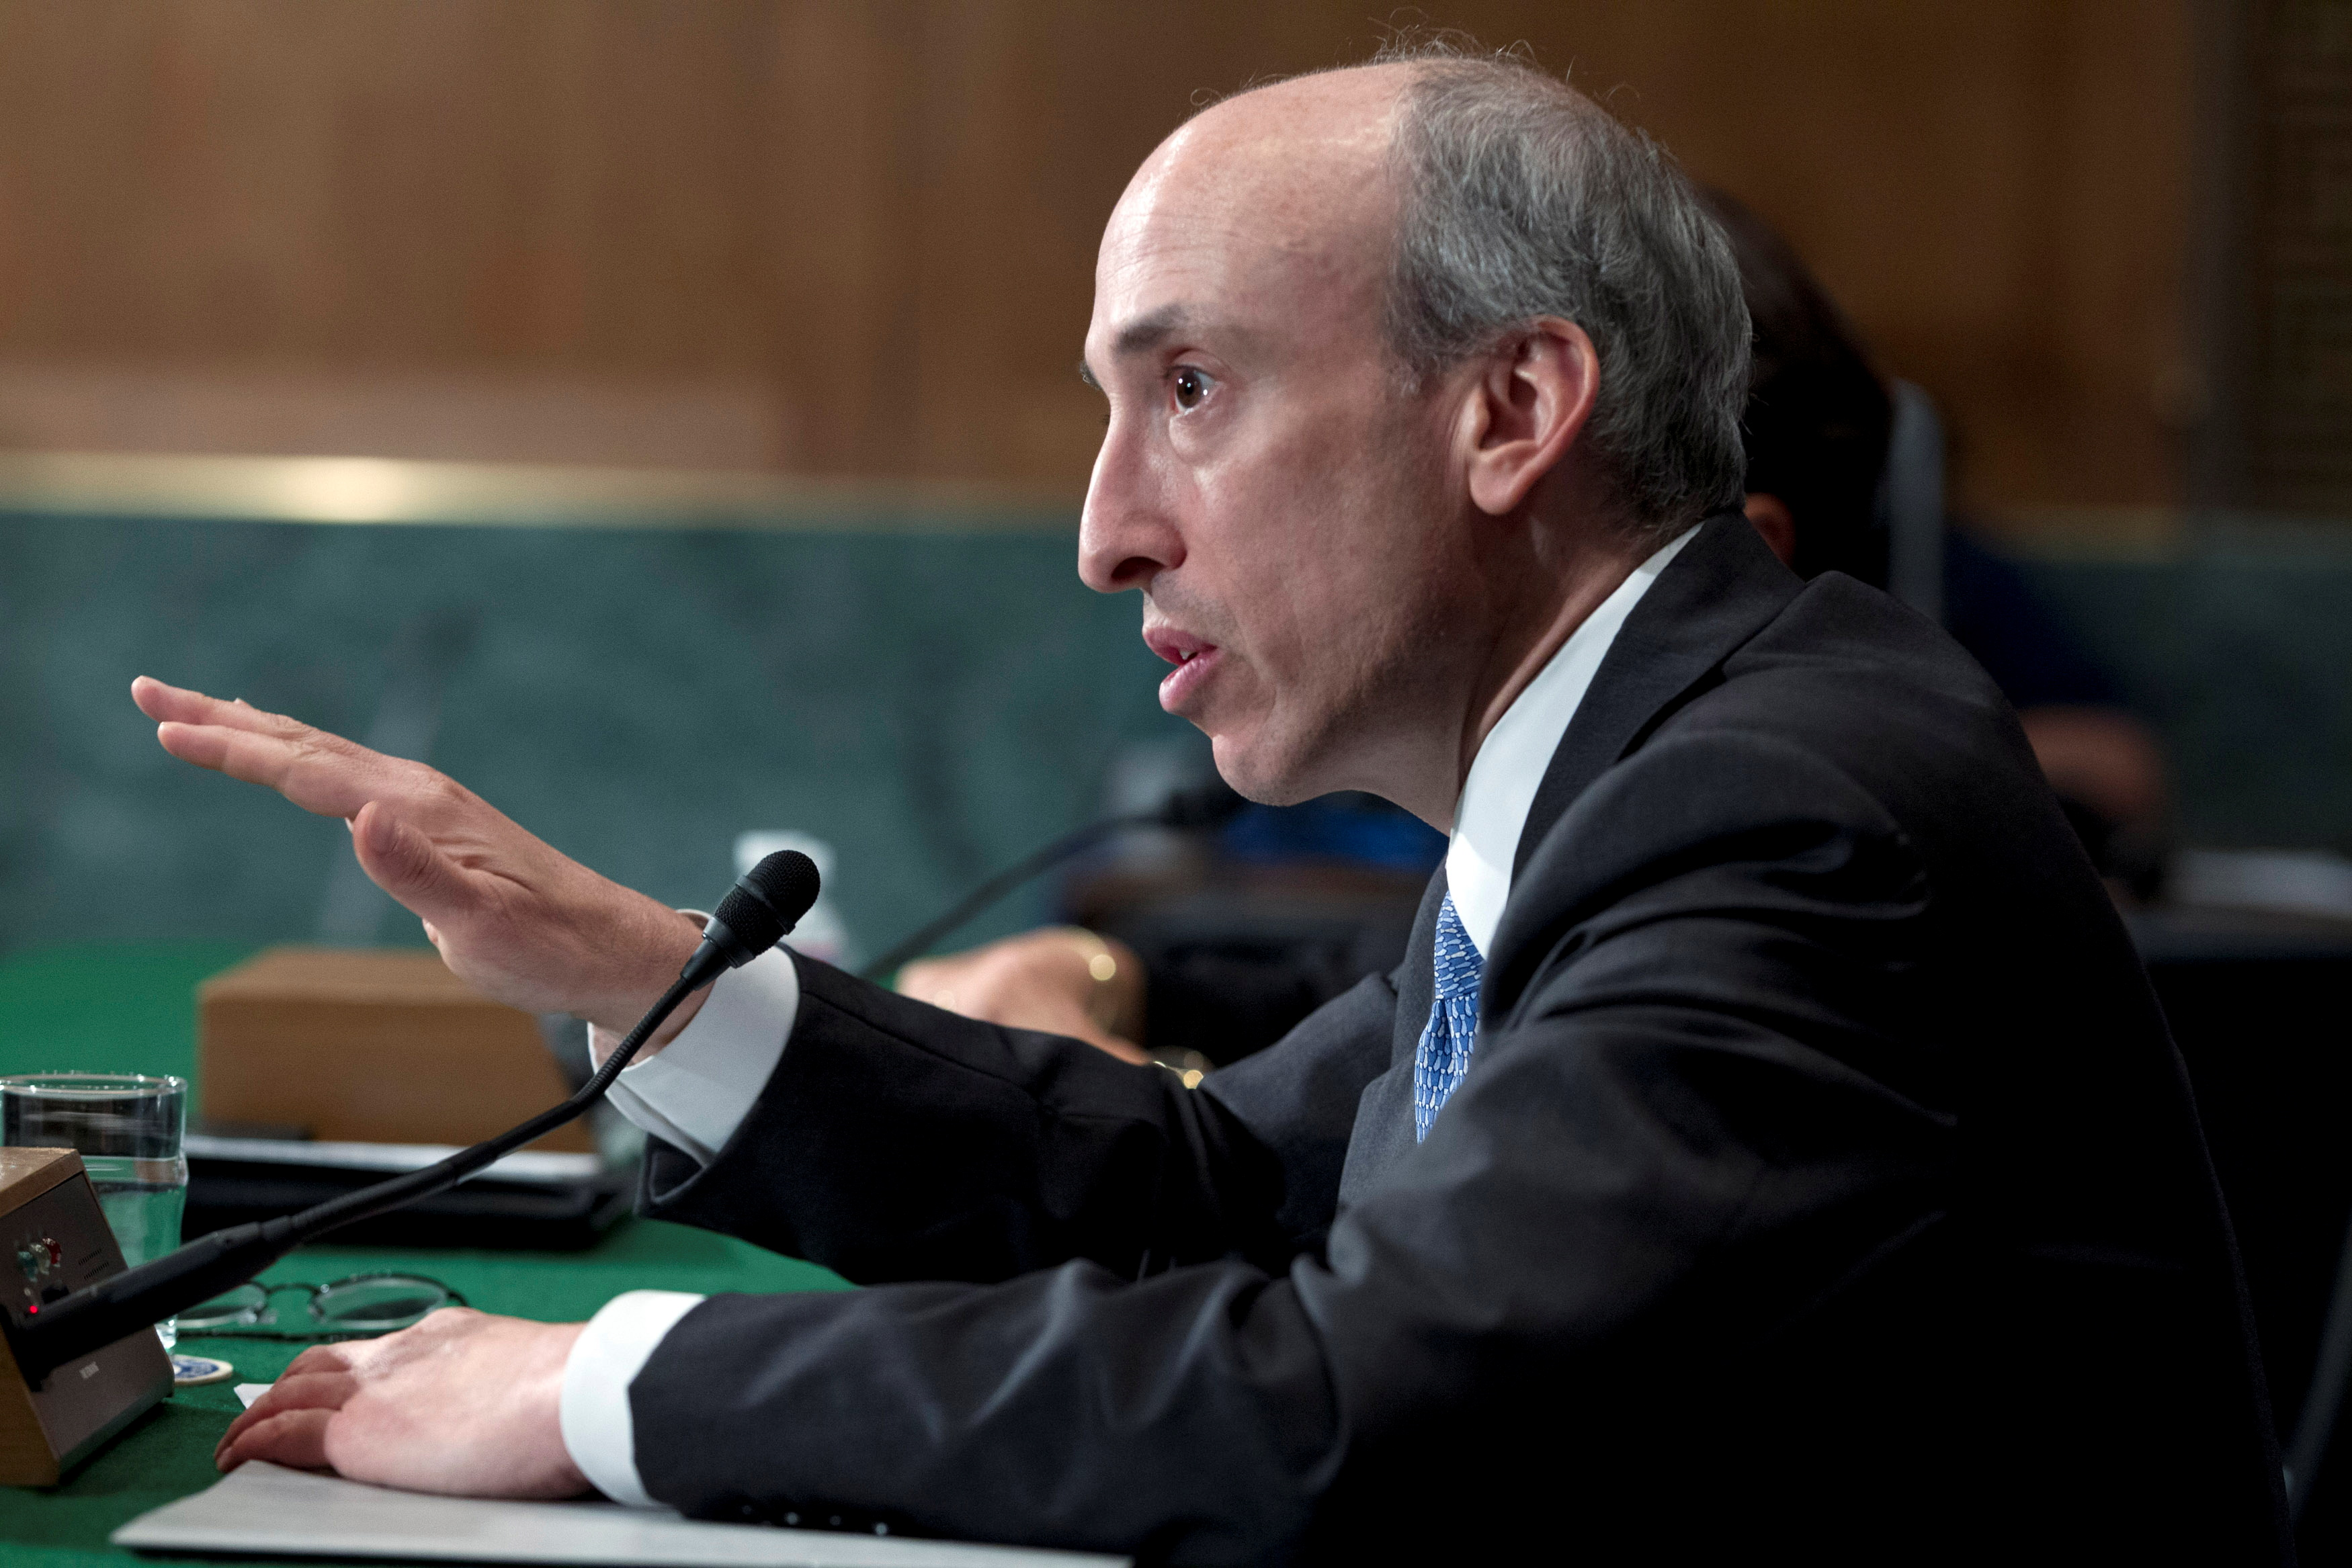 Commodity Futures Trading Commission Chair Gary Gensler testifies at a Senate Banking, Housing and Urban Affairs Committee hearing on Capitol Hill July 30, 2013. REUTERS/Jose Luis Magana (UNITED STATES - Tags: POLITICS BUSINESS)/File Photo